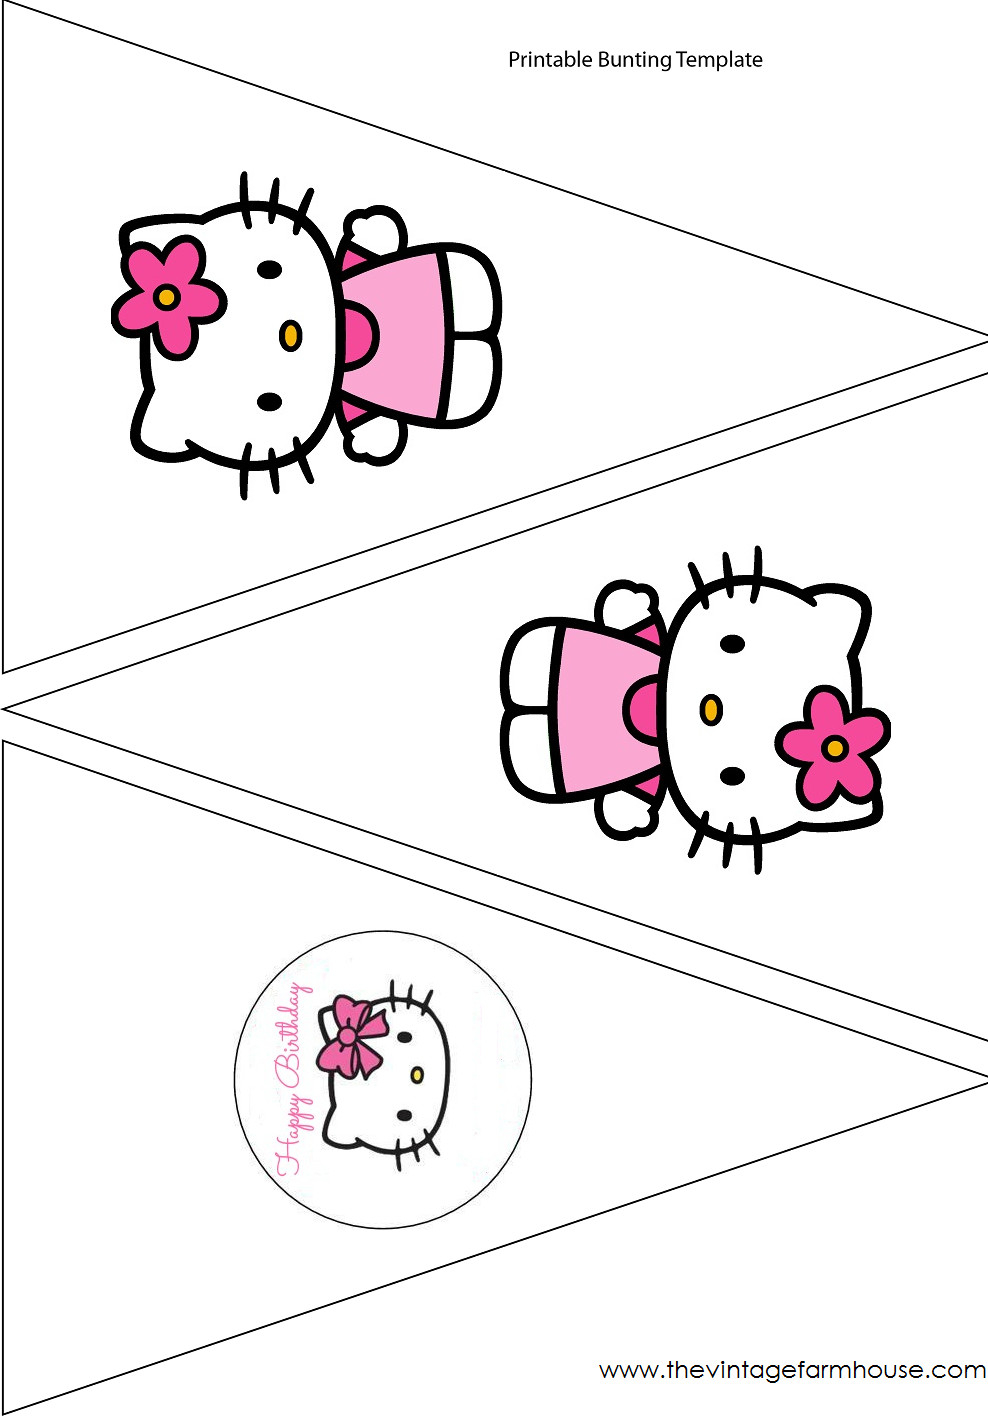 Hello Kitty Banner Printable Fresh The Vintage Farmhouse Hello Kitty Pertaining To Hello Kitty Birthday Banner Template Free